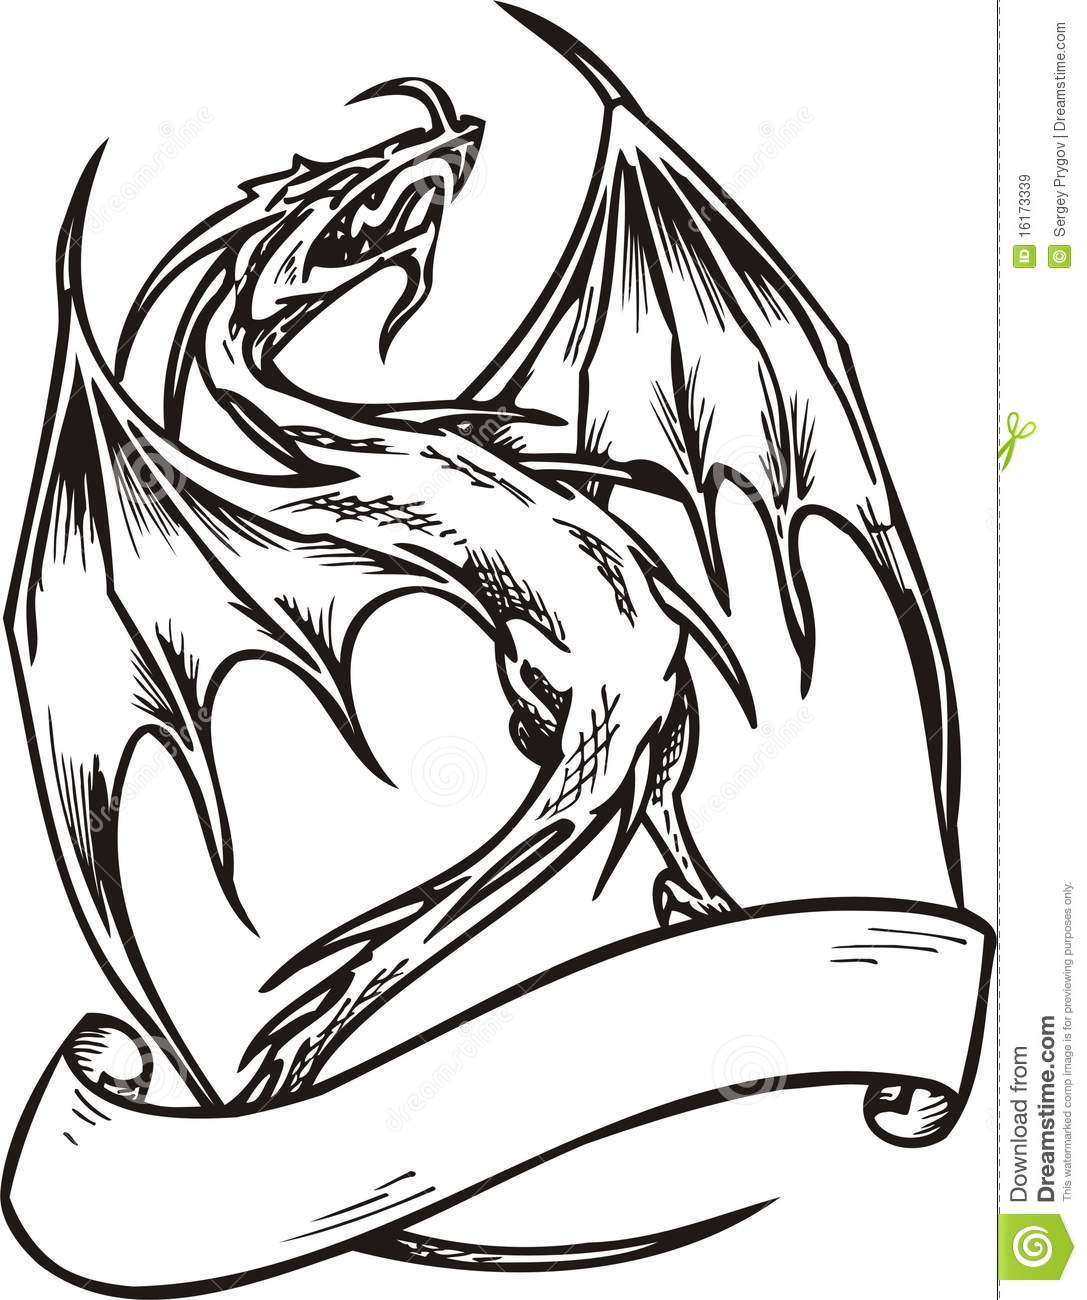 dragon template stock vector illustration of claw monster 16173339